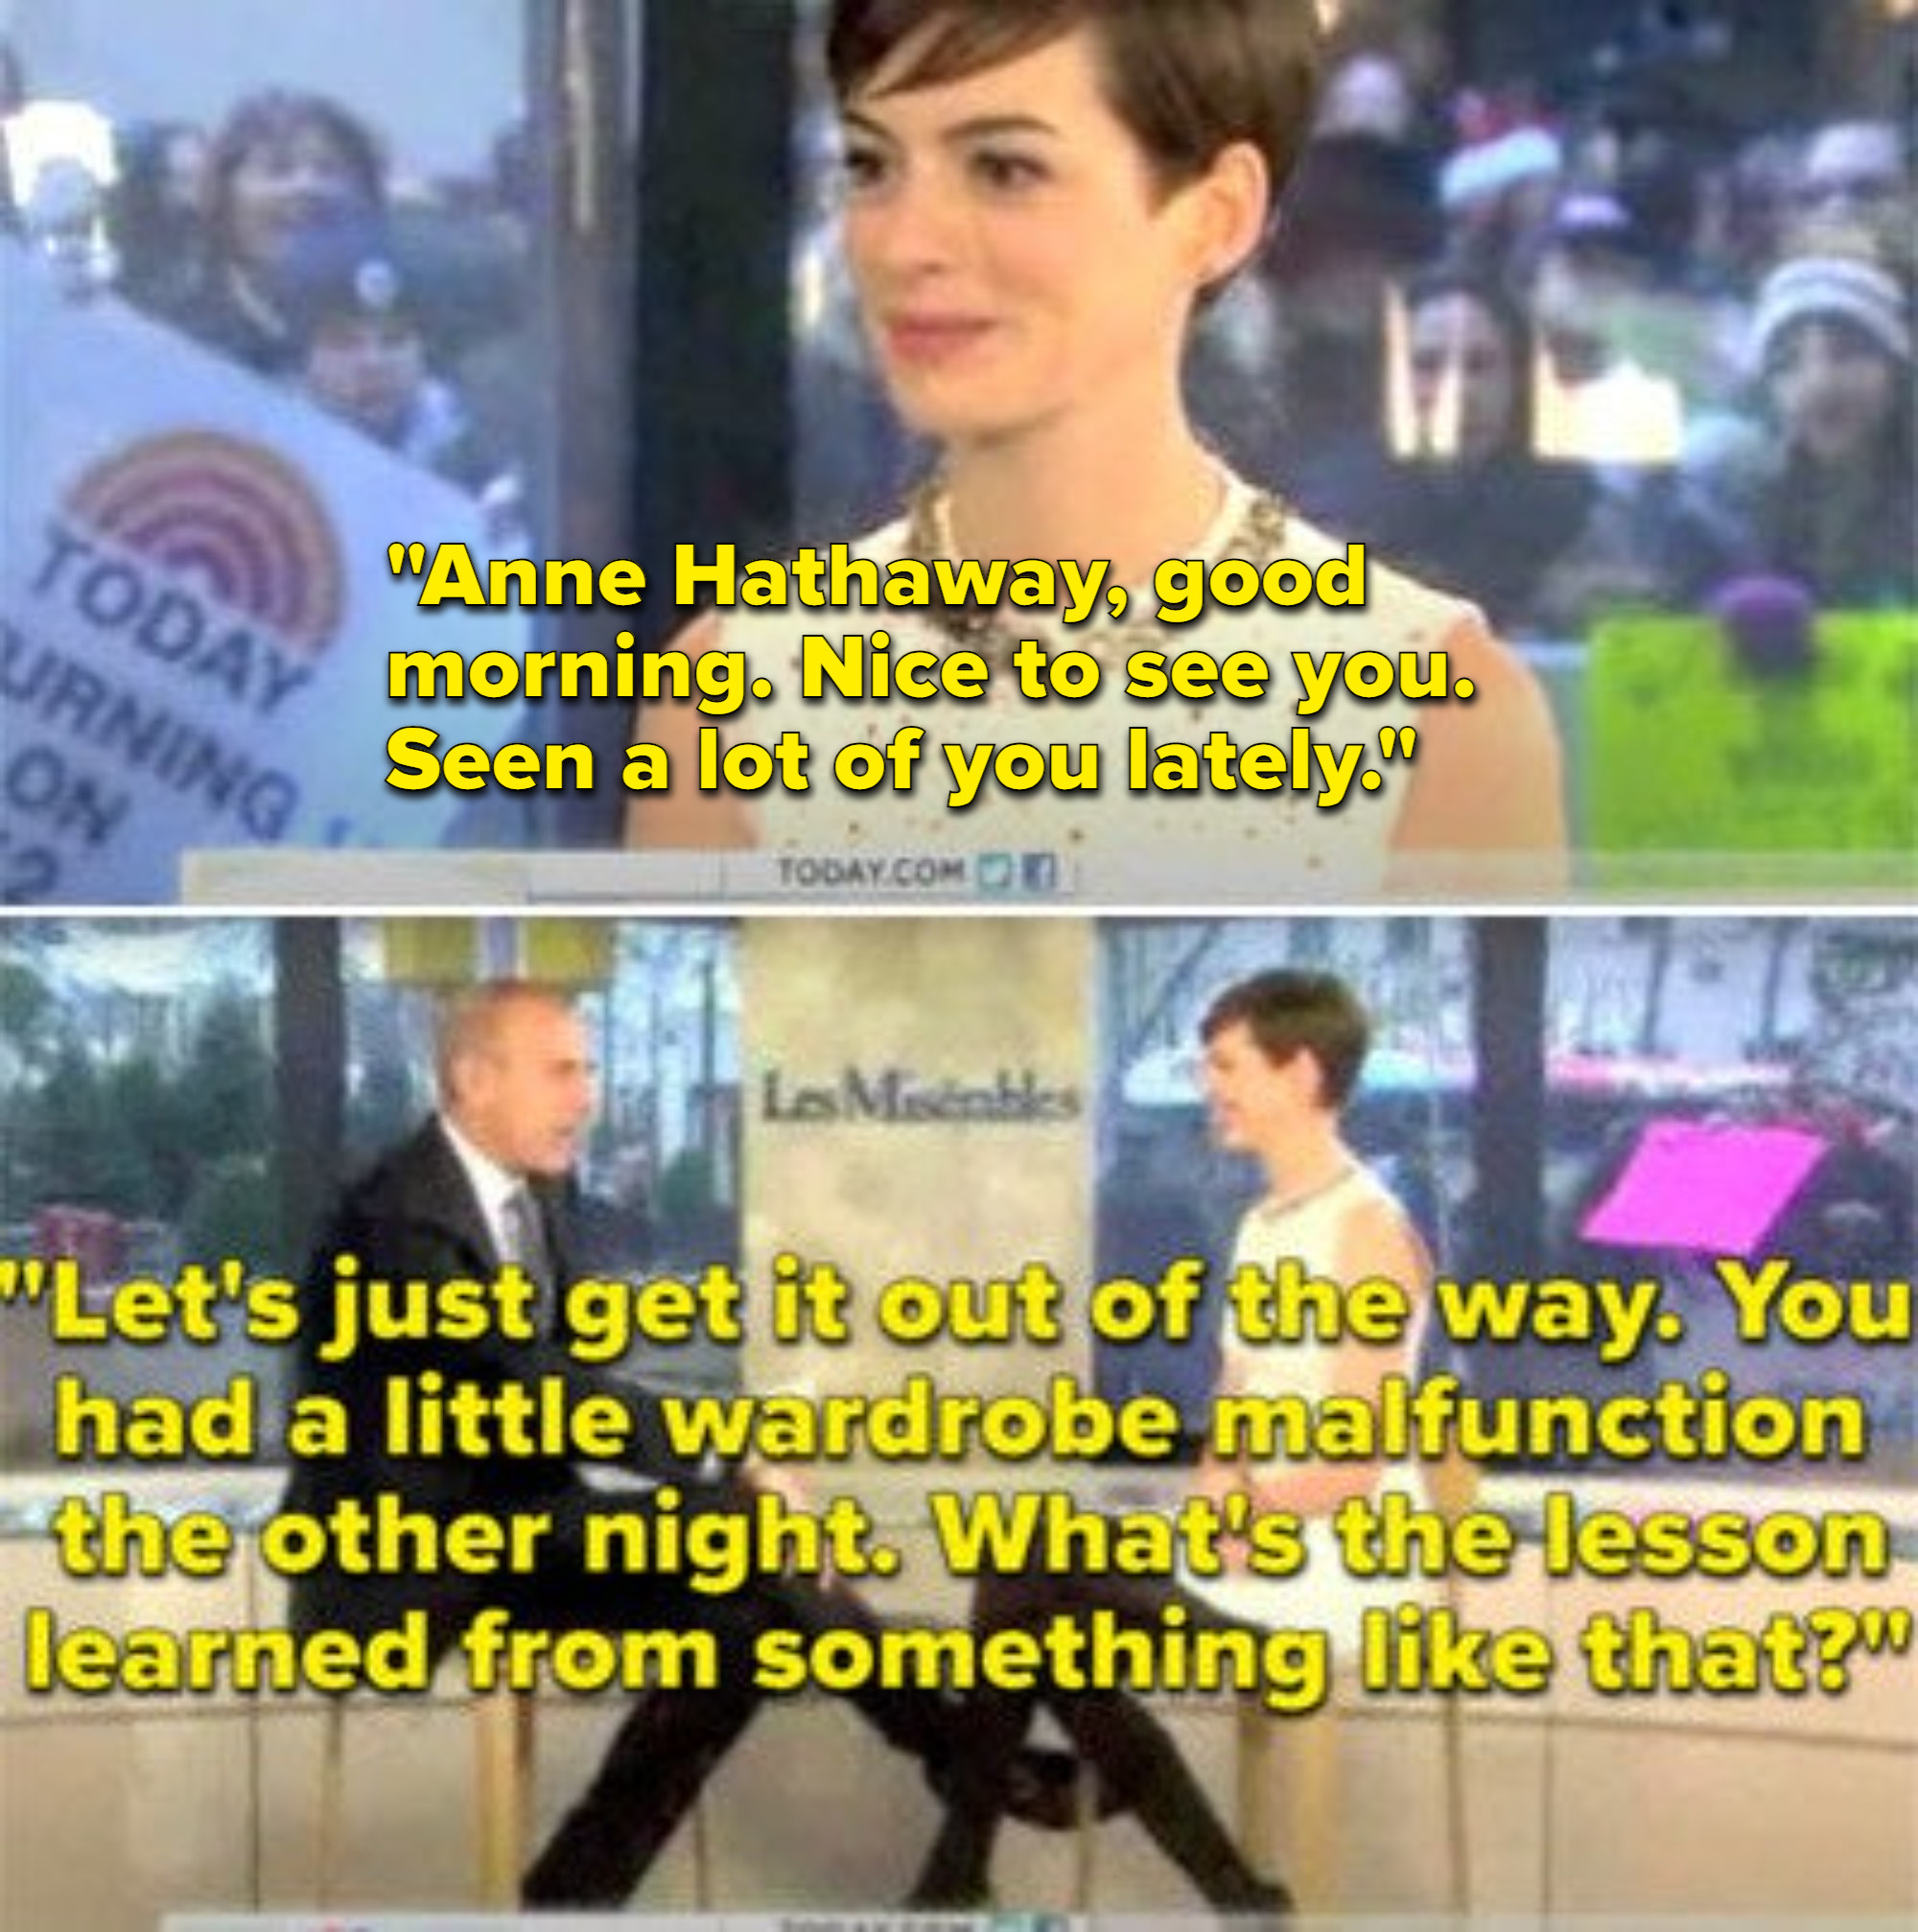 Matt Lauer asking Anne Hathaway what she learned from the paparazzi taking a photo of under her skirt